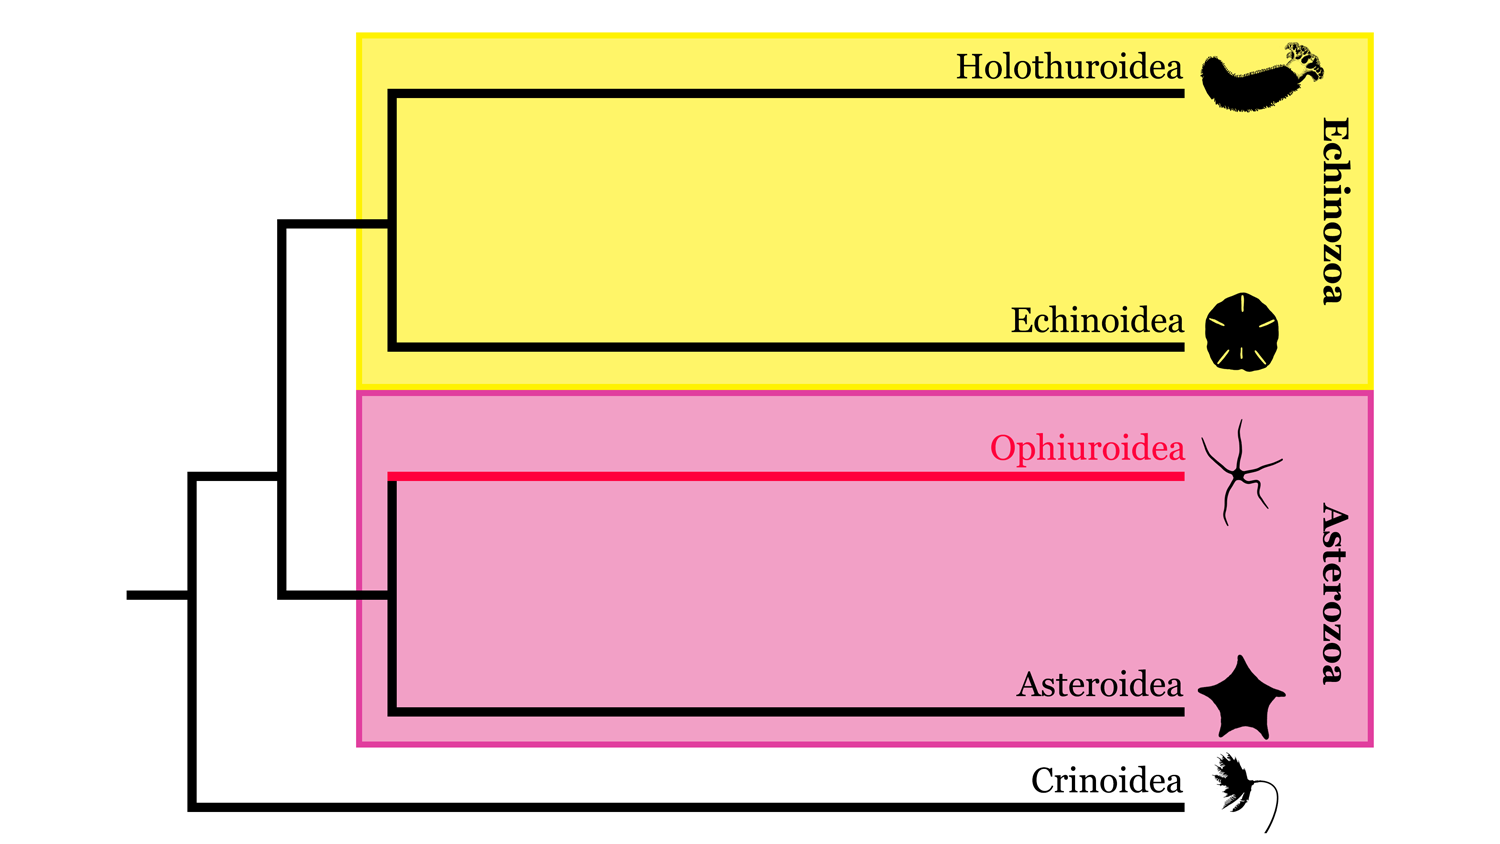 Image of Echinodermata phylogeny, highlighting where Ophiuroidea sits